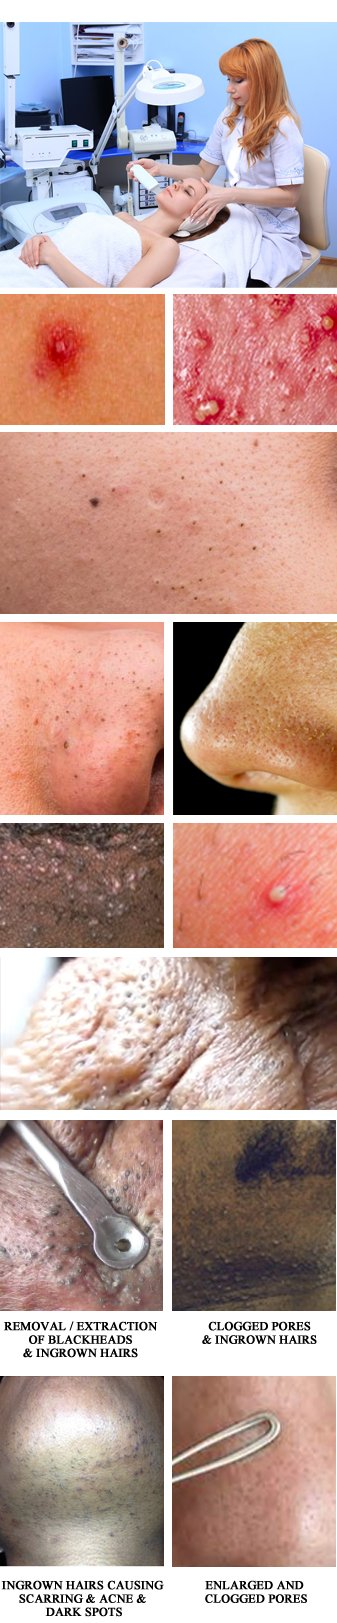 Extractions of Blackheads | Whiteheads | Acne | Rye Brook